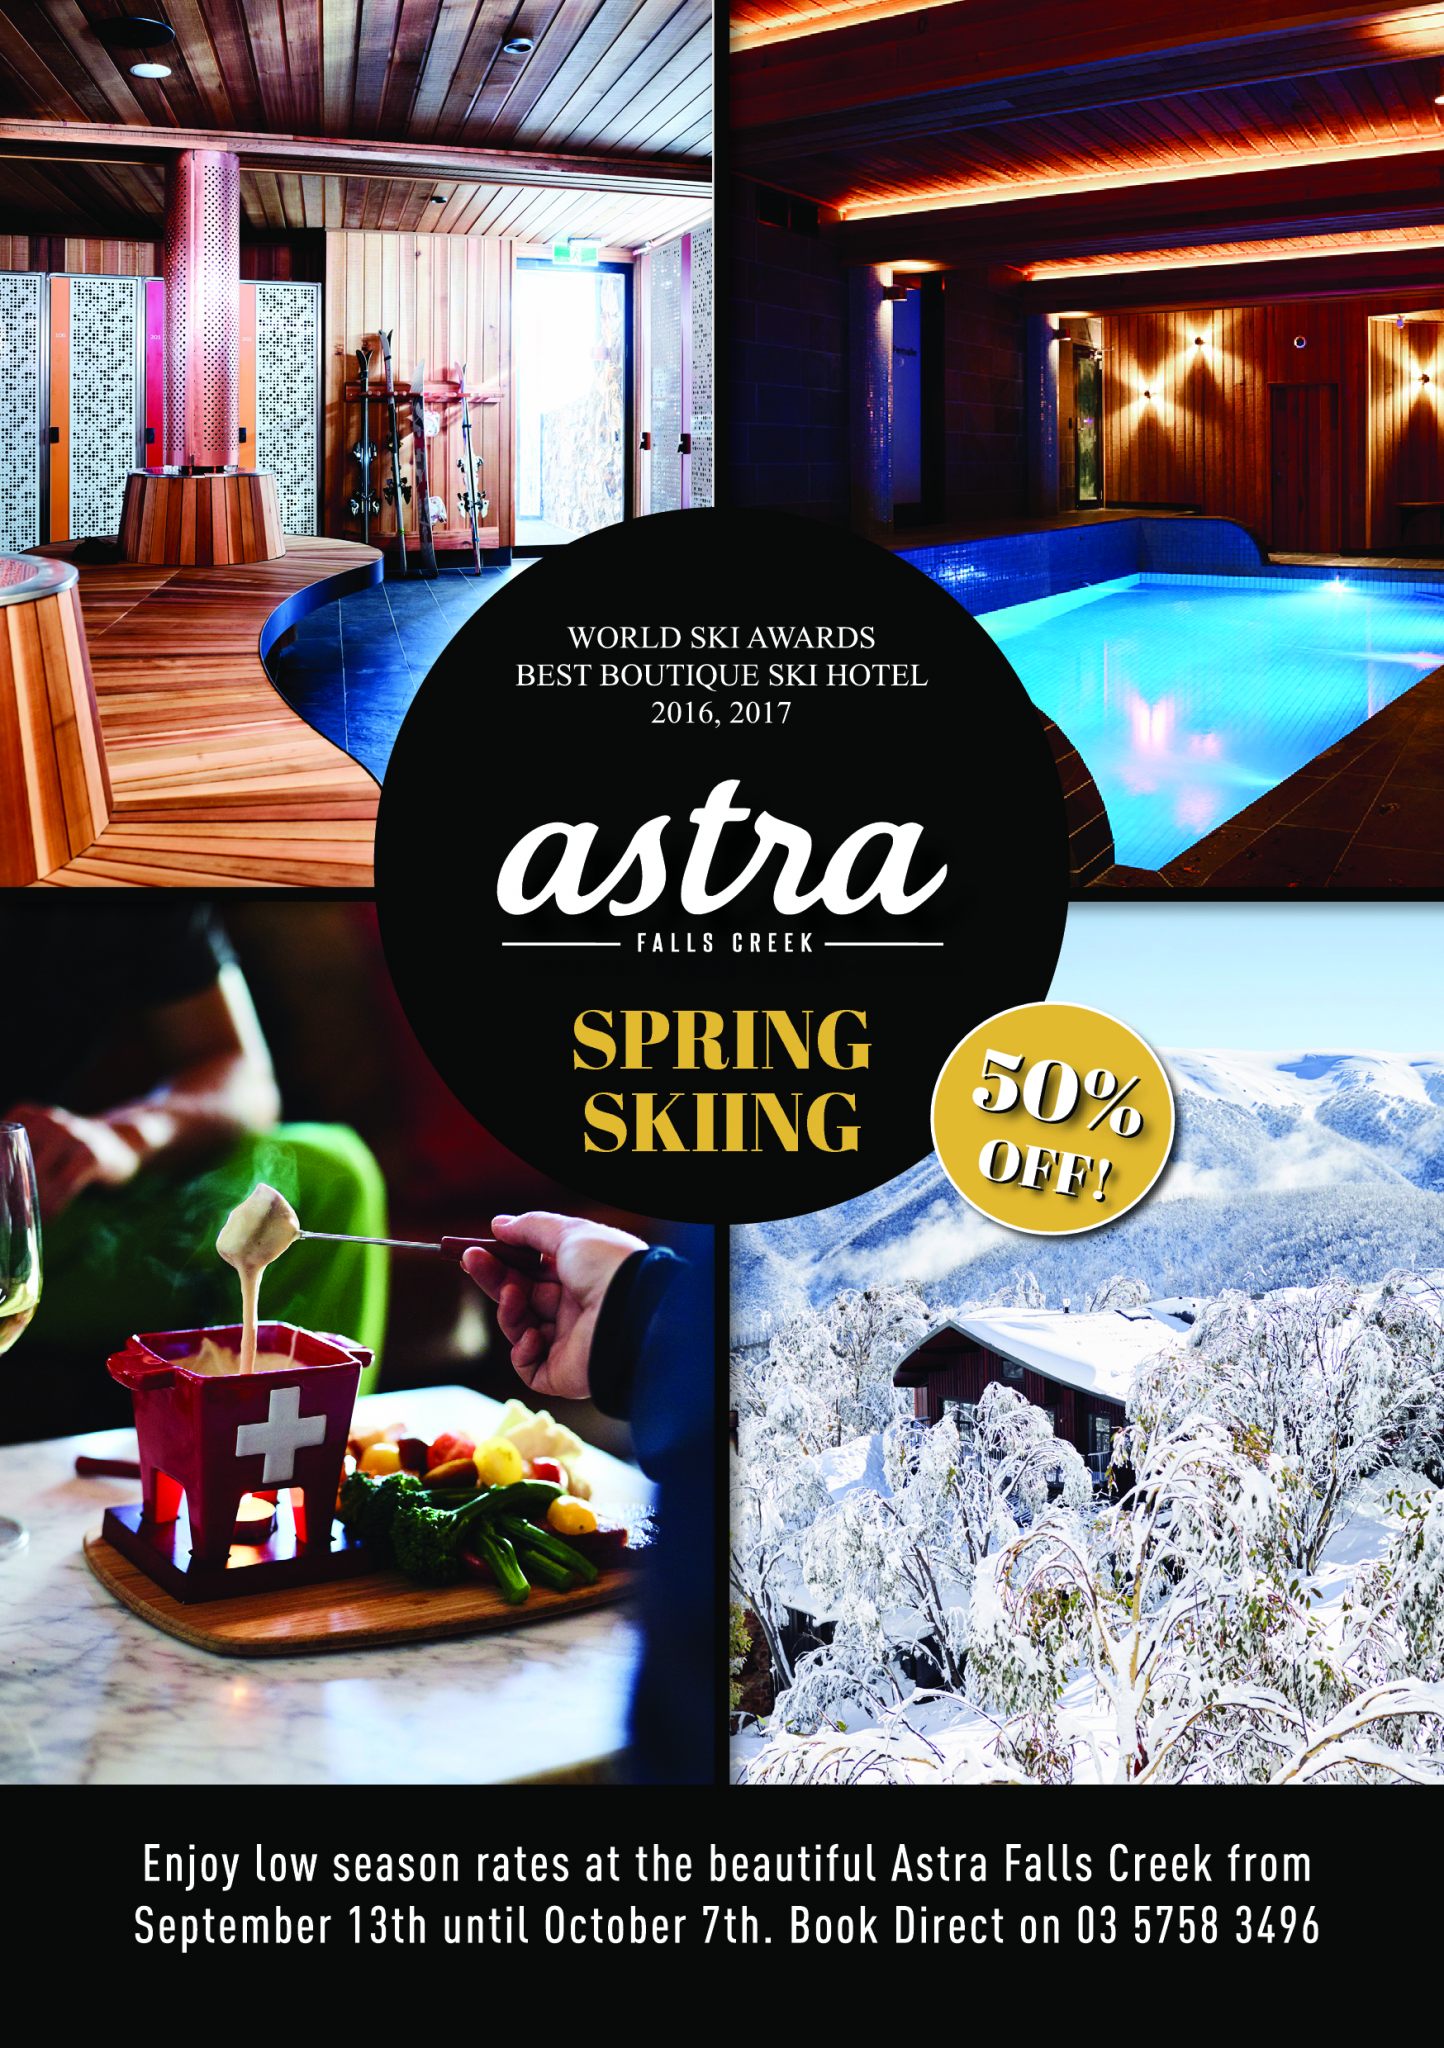 Astra Falls Creek Spring Skiing Sale